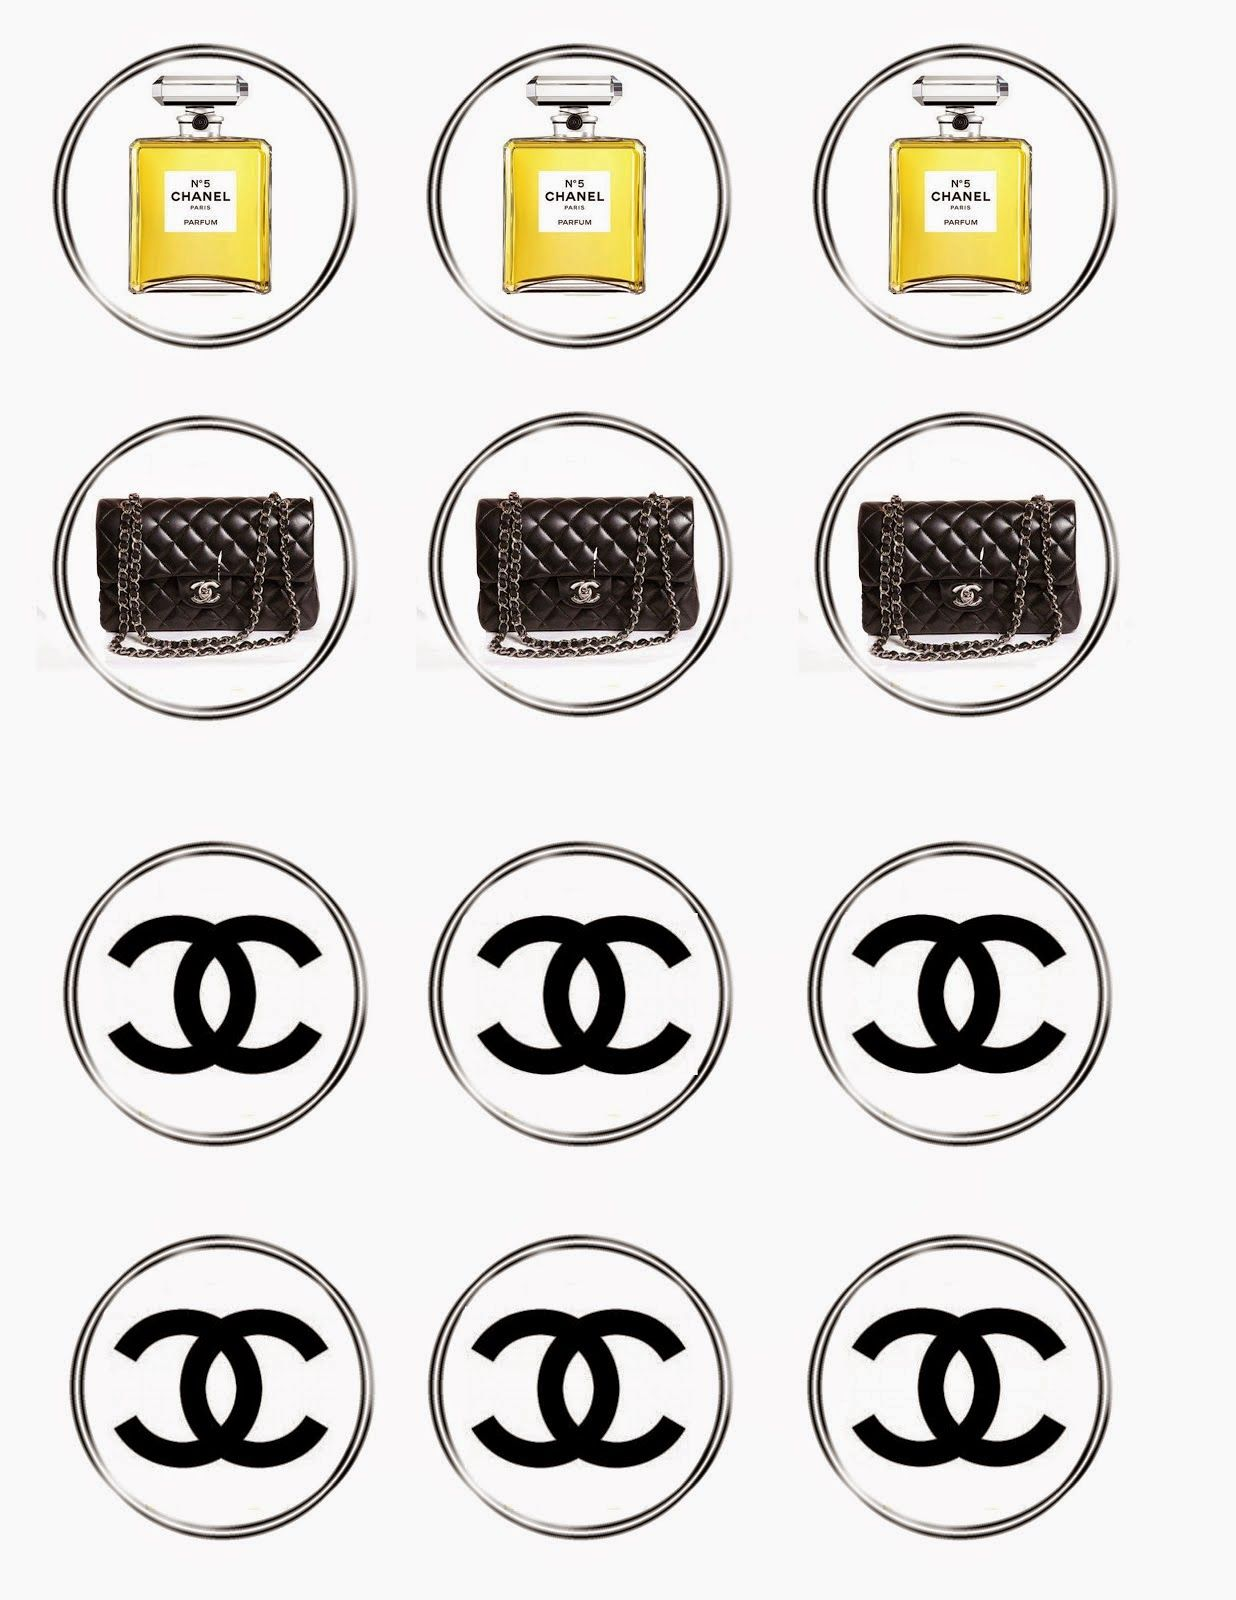 chanel free printable toppers labels stickers or bottle caps